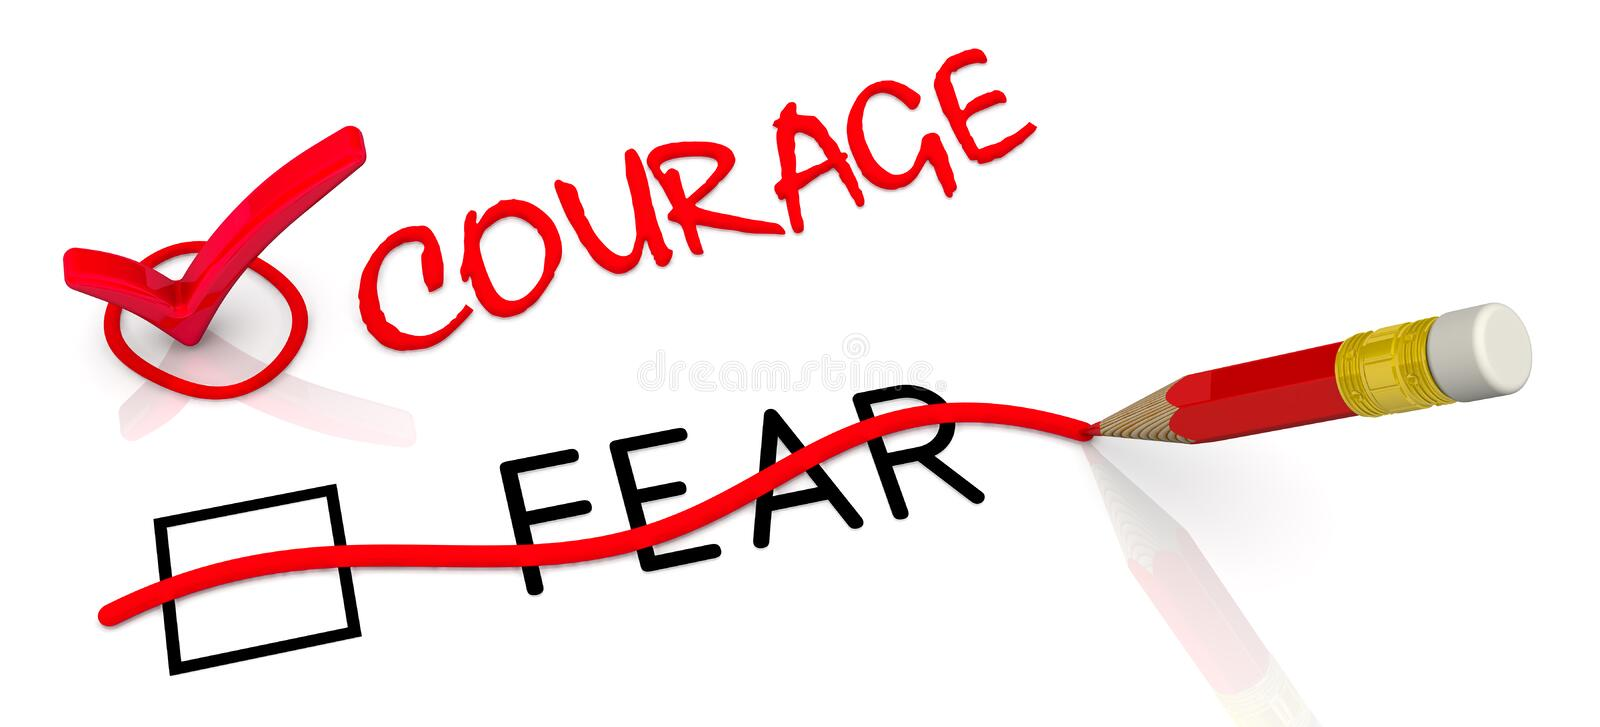 Courage but not fear. The concept of changing the conclusion. The red pencil corrected black word FEAR to red word COURAGE. Isolated. 3D illustration stock illustration